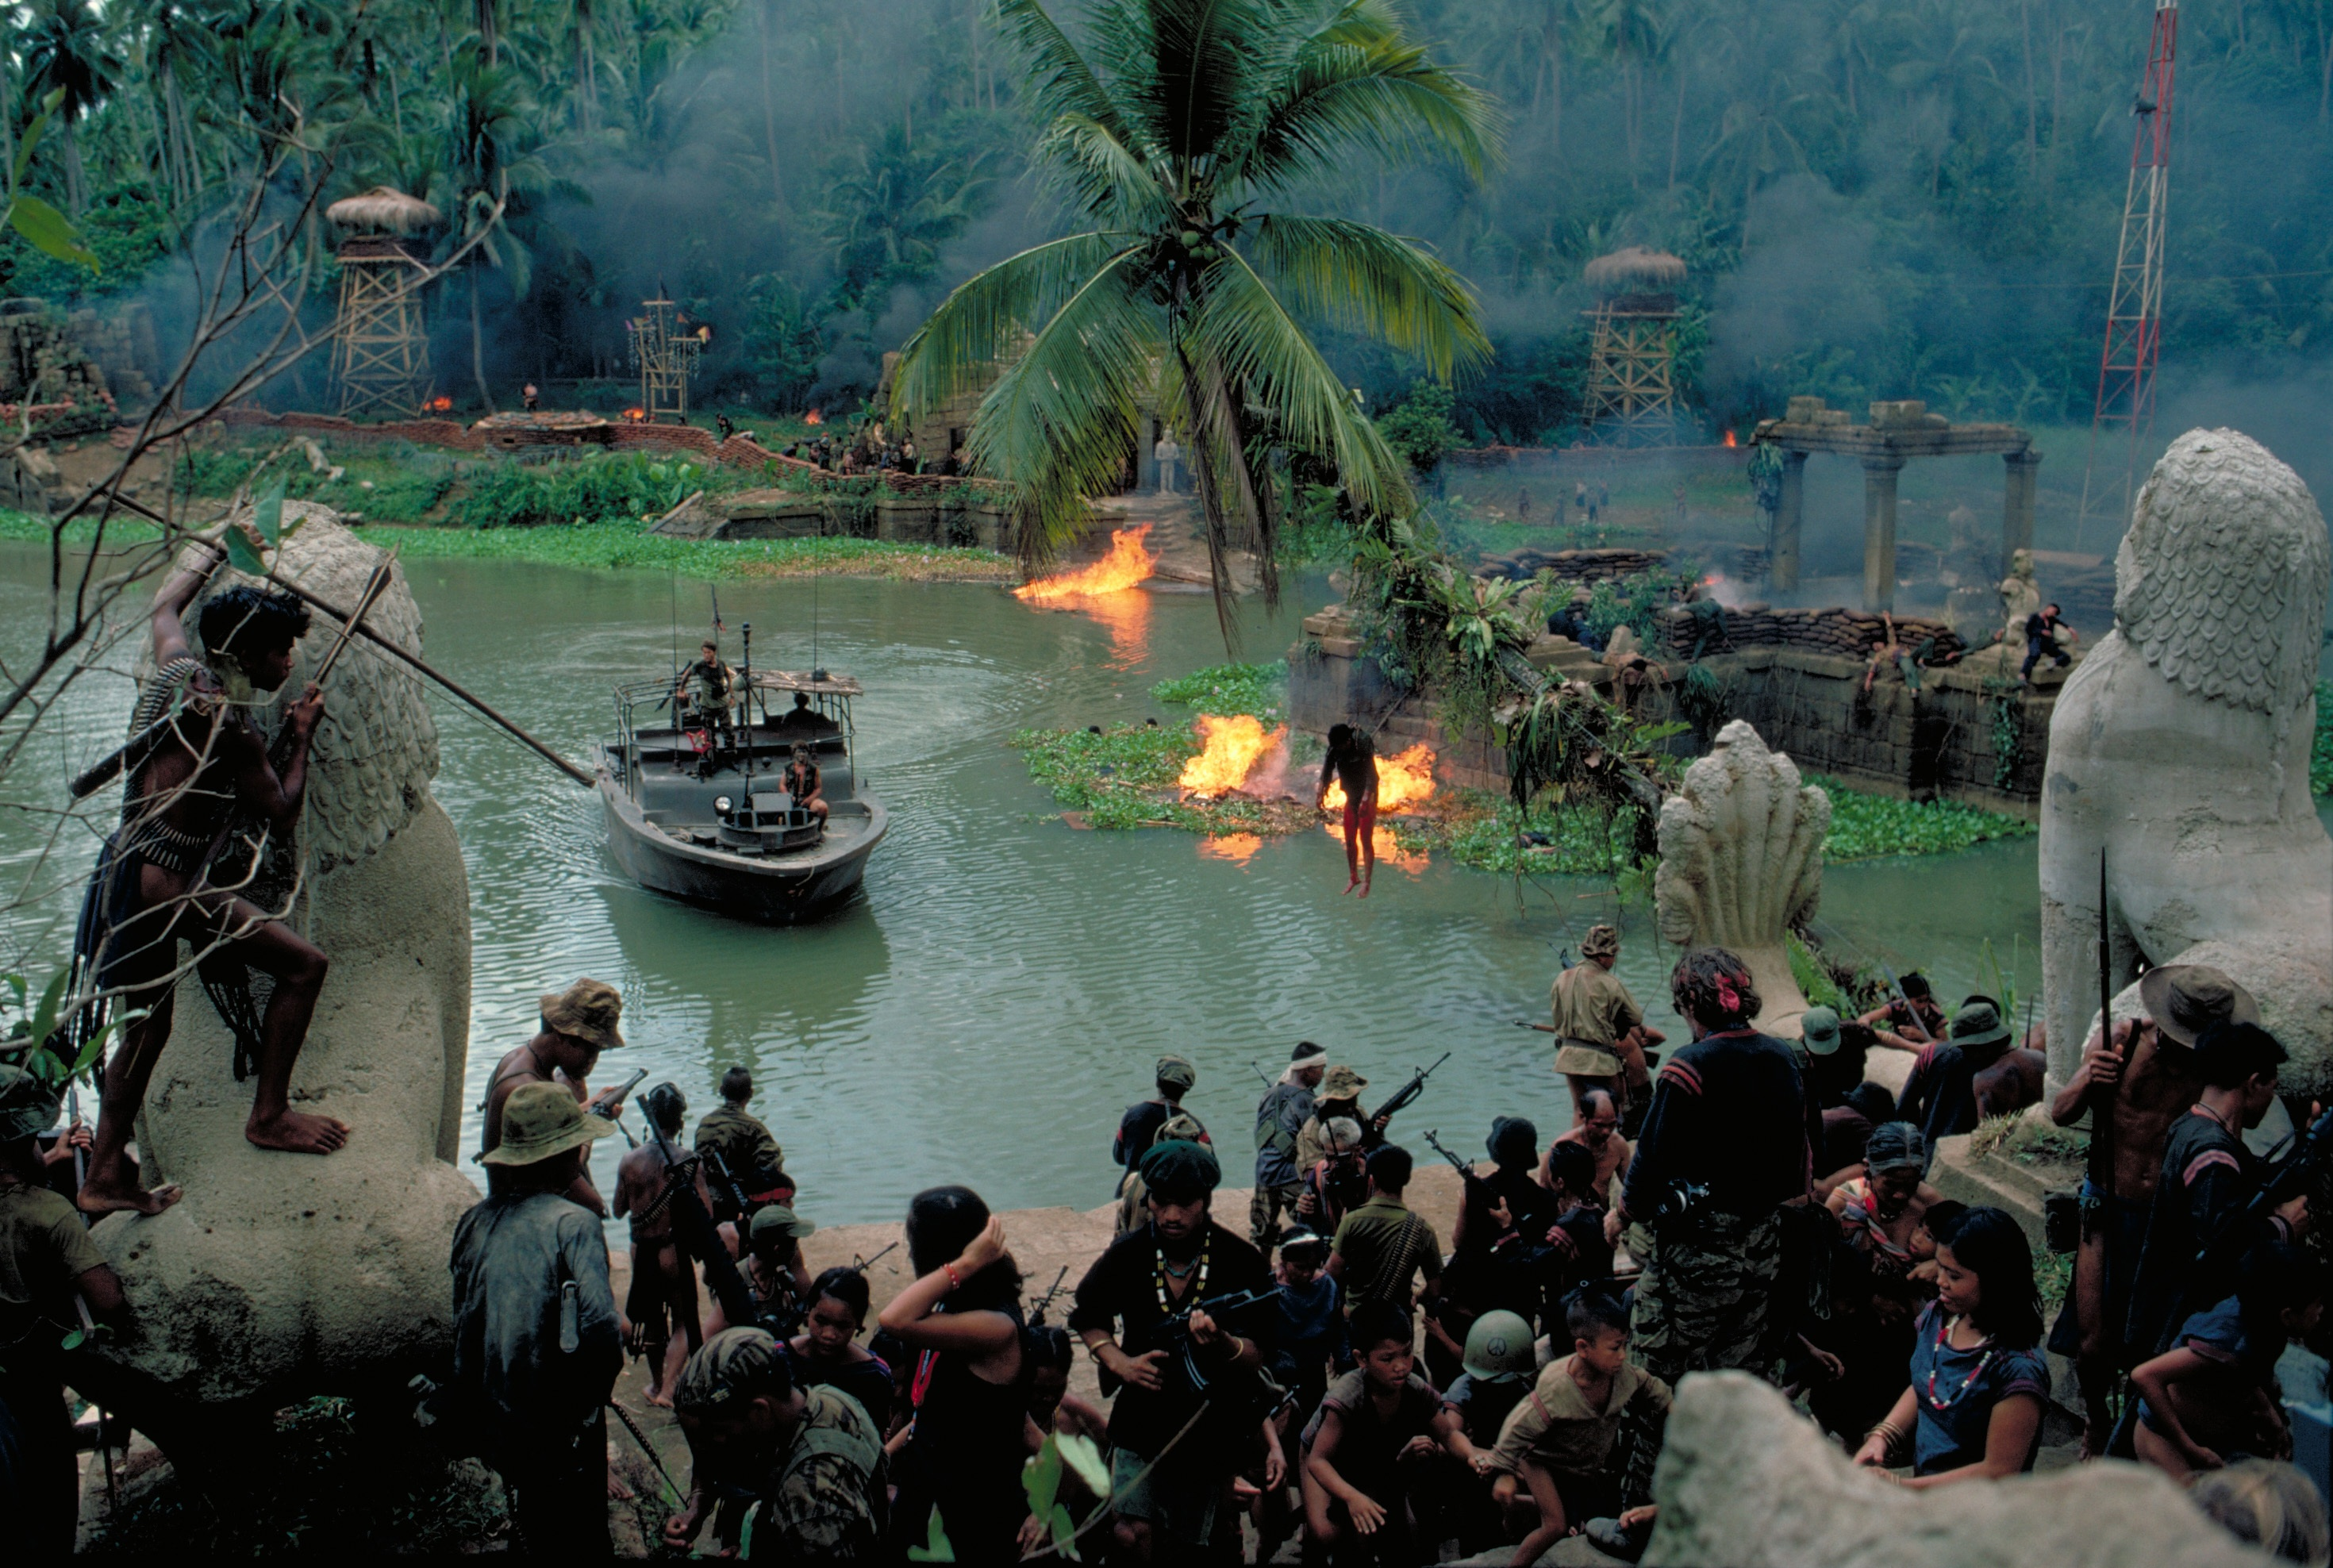 apocalypse now heart of darkness comparison essay